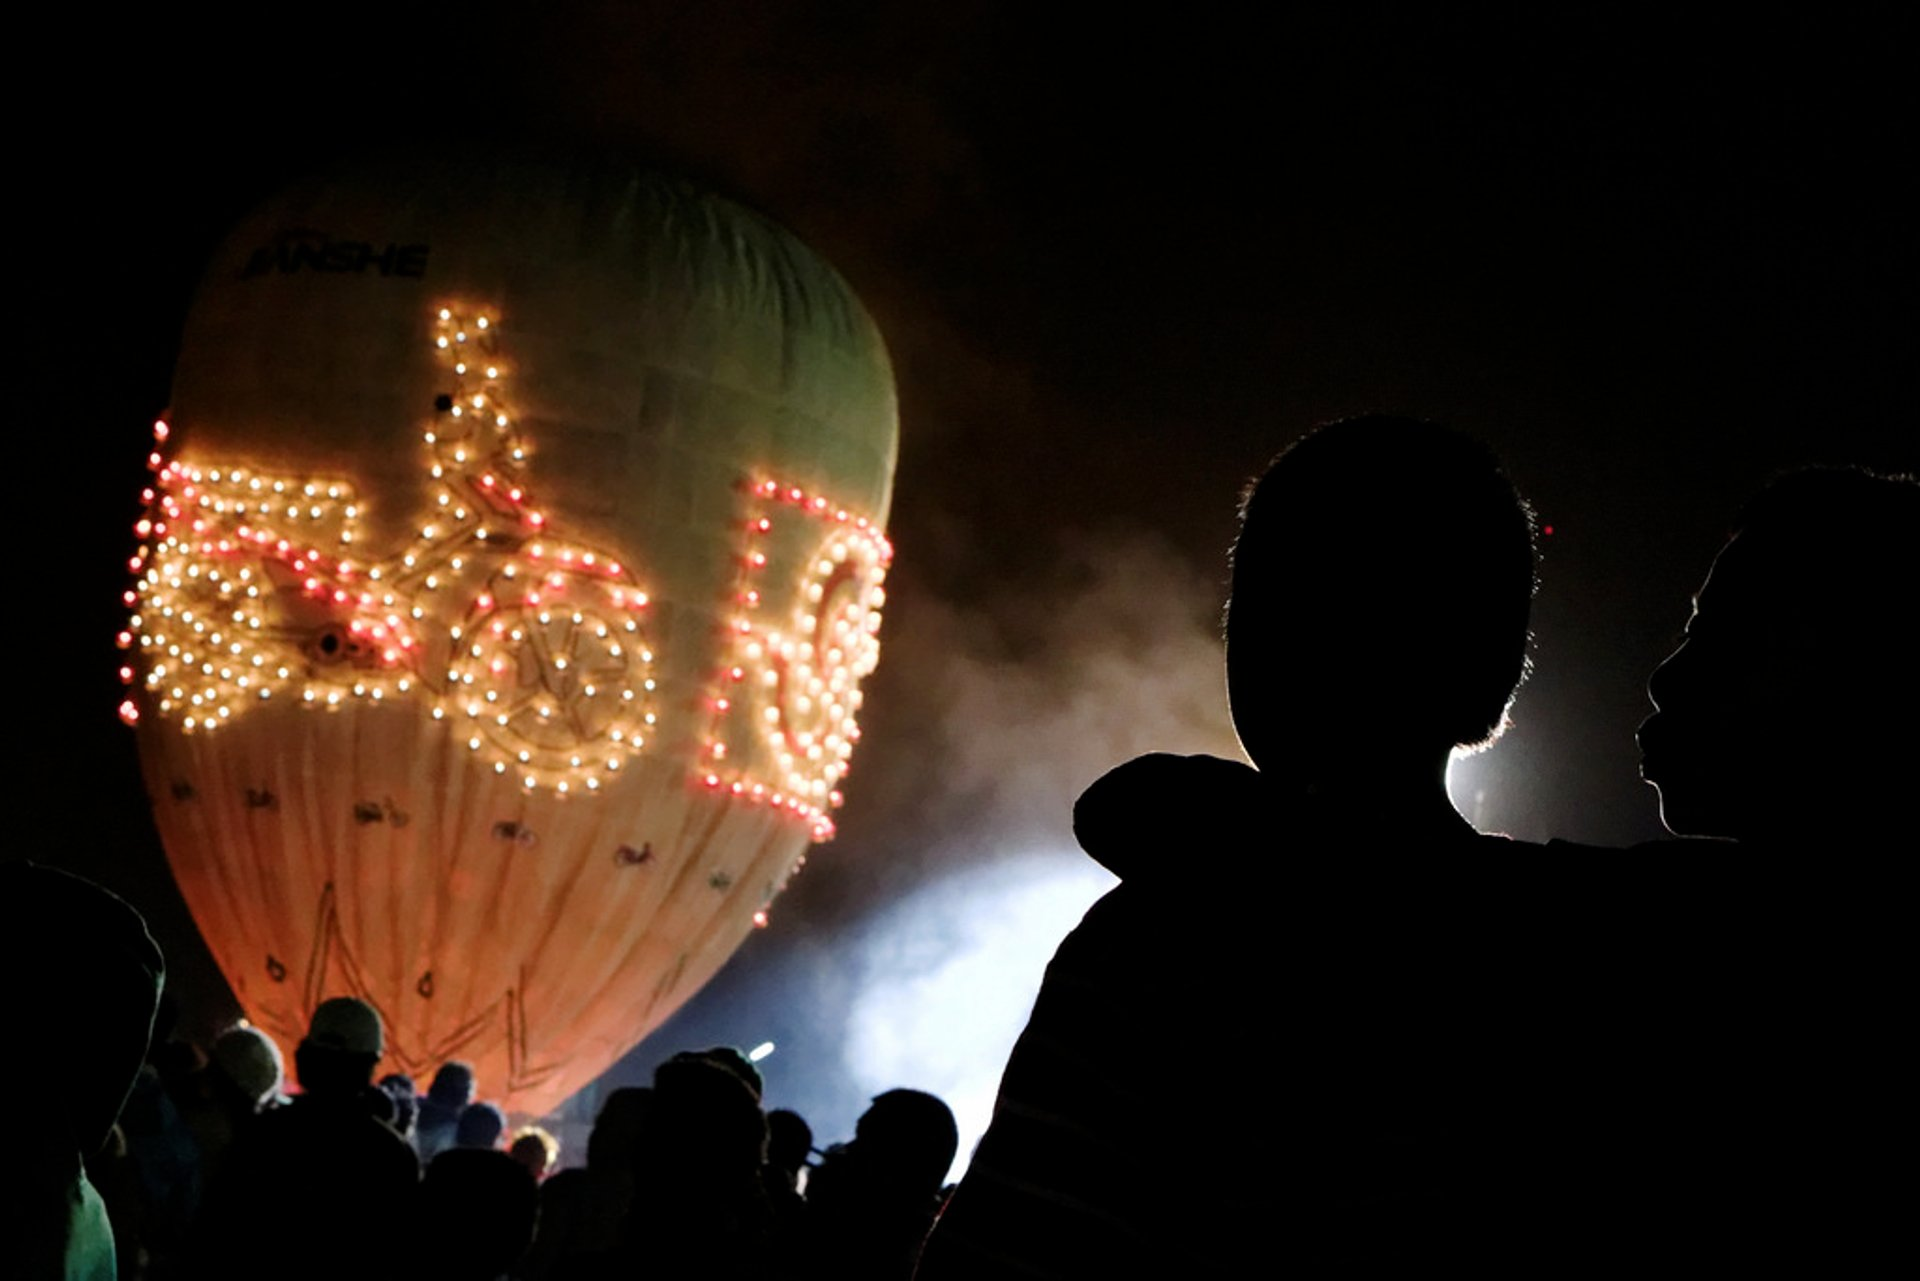 Best time to see Balloon Festival in Taunggyi in Myanmar 2020